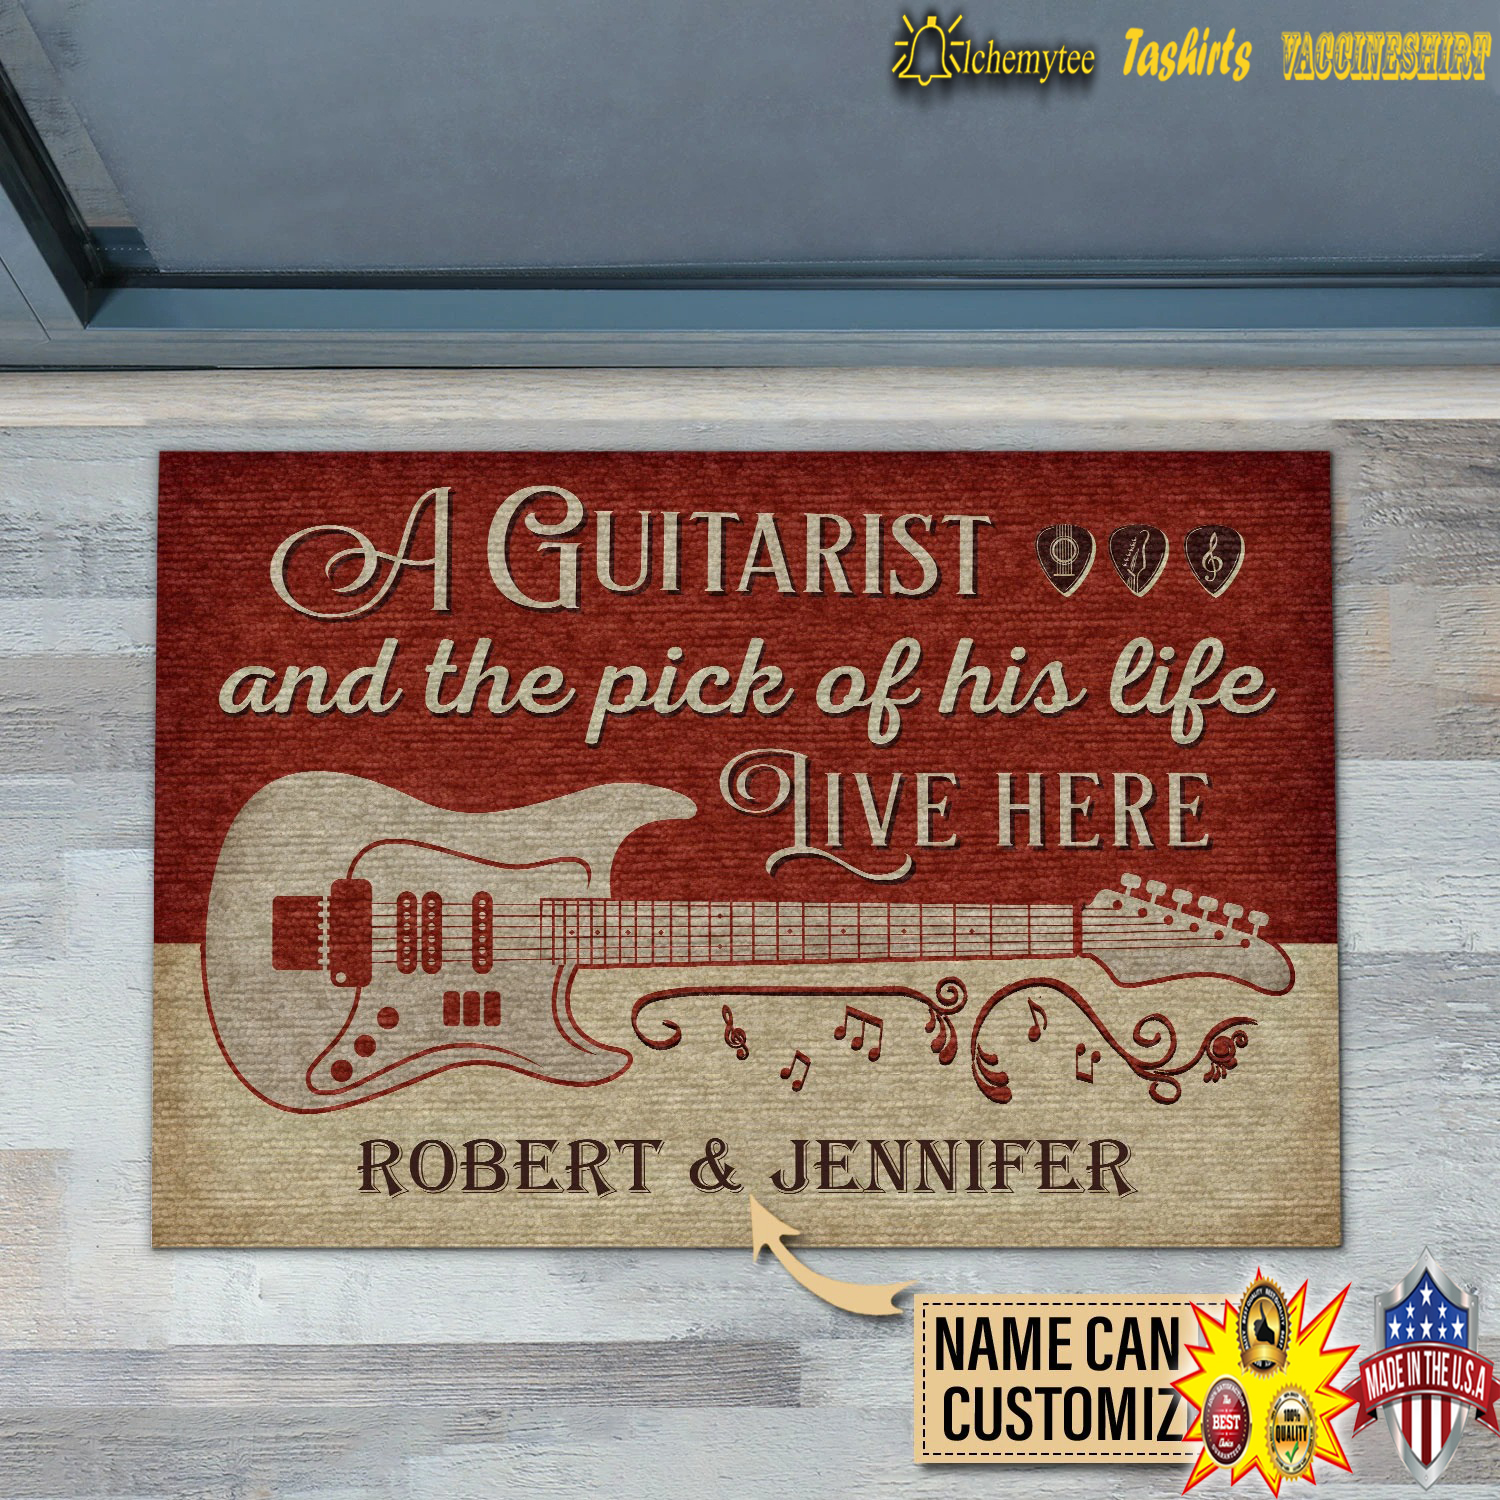 Personalized A guitarist and the pick of his life live here custom name doormat